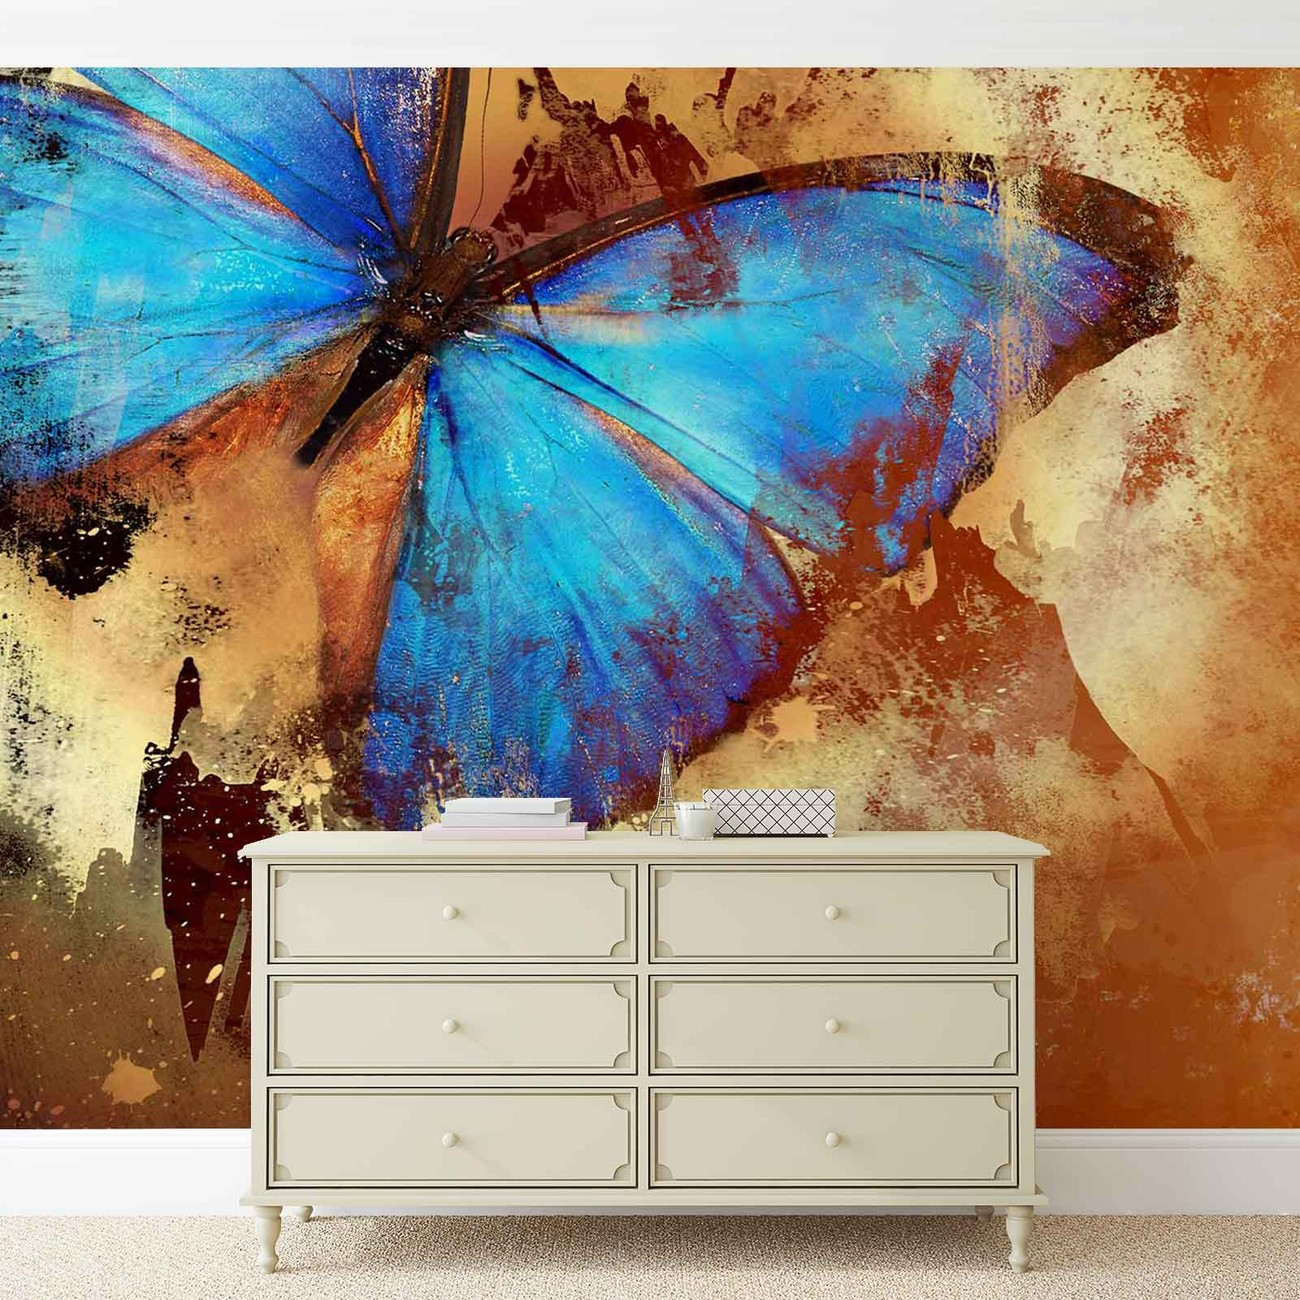 Butterfly art wall paper mural buy at europosters for Butterfly mural wallpaper